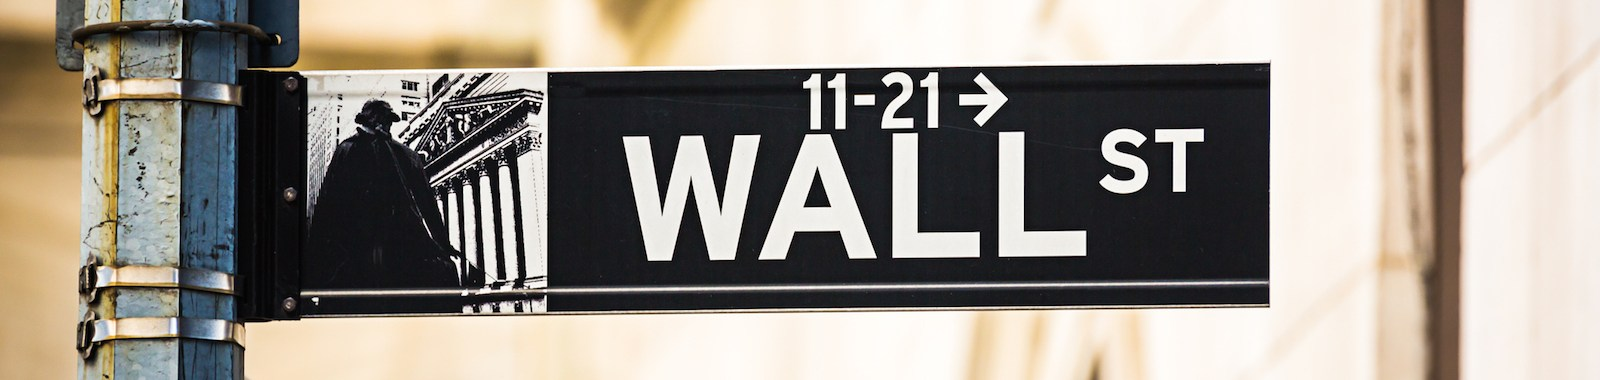 Wall Street sign, New York City, USA.